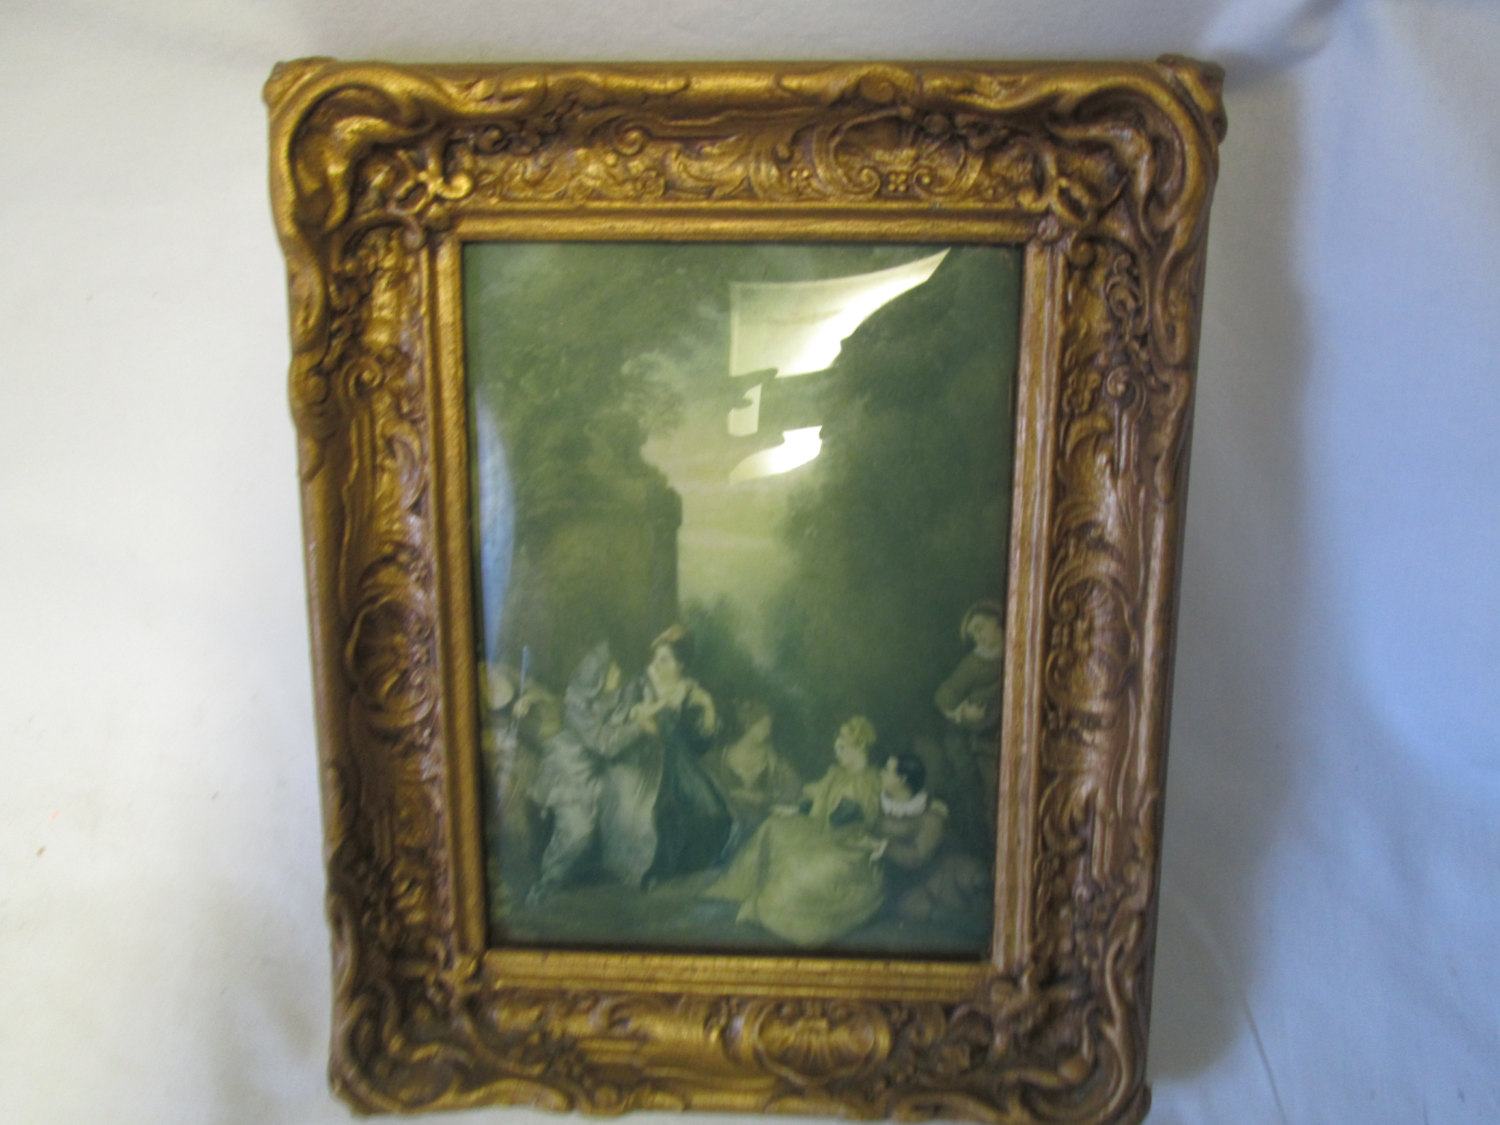 Vintage Victorian Scene Wall Art Convex Glass Ornate Gold Wooden Frame Victorian Dressed Men And Women Relaxing At Cliff